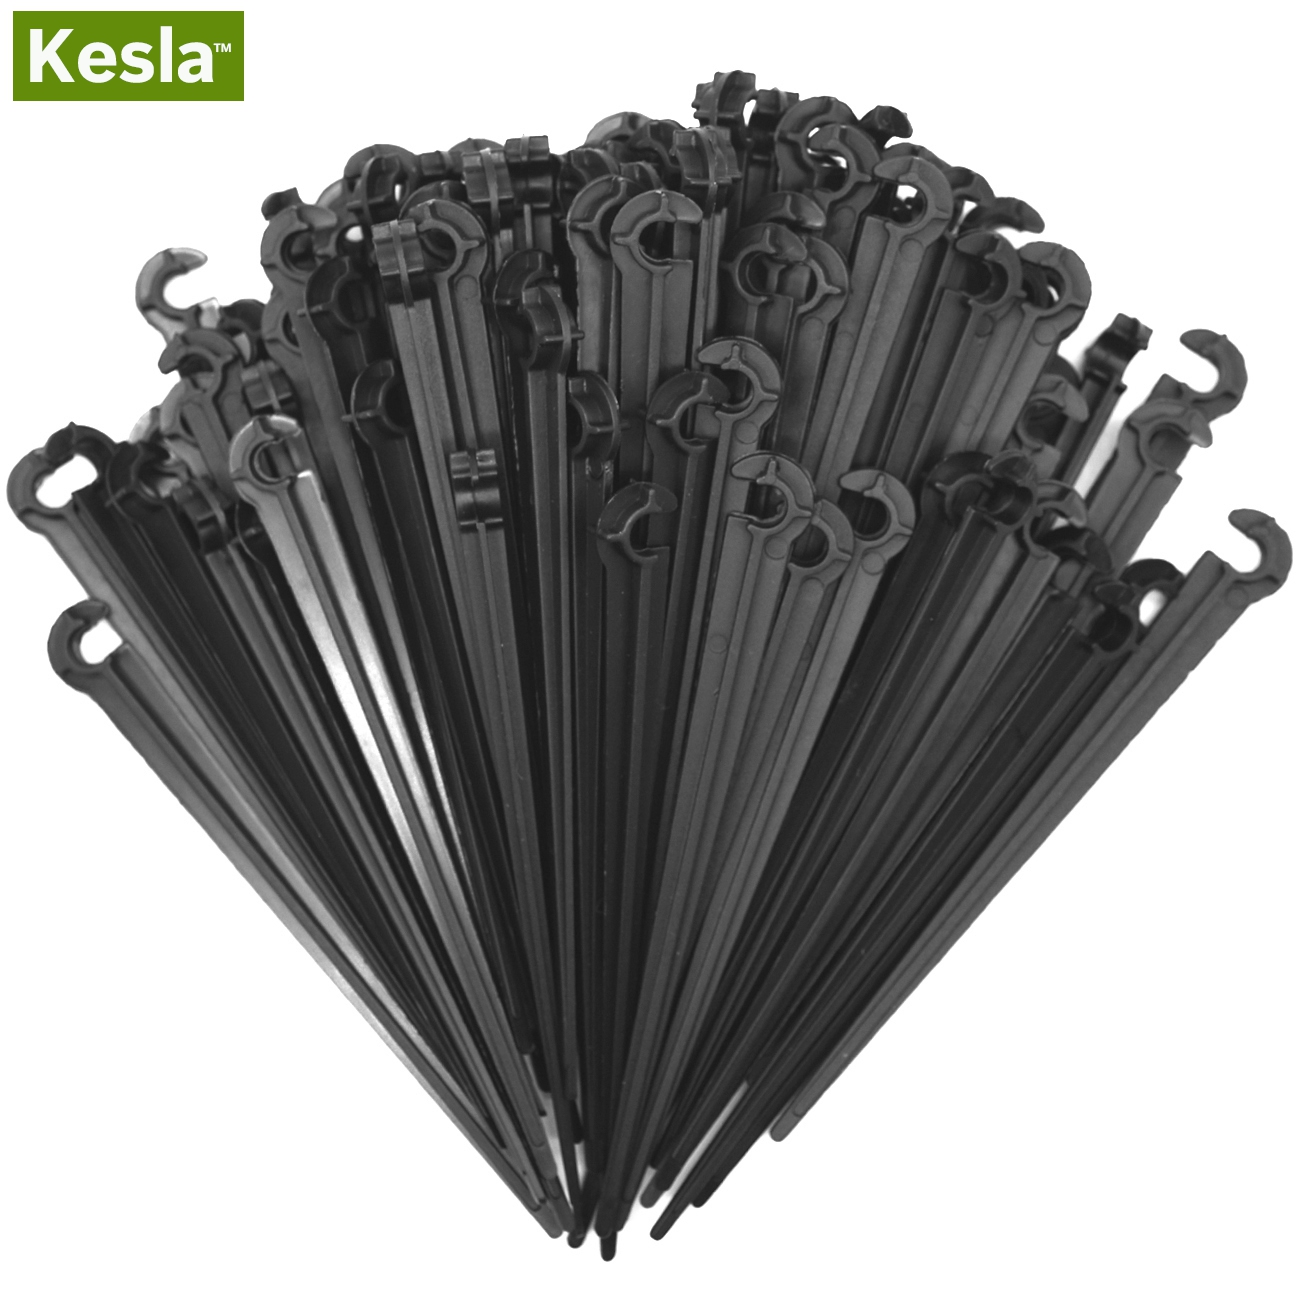 H67255cbf3c224cb48ddec95271c7af98e 50-200PCS Durable 1/4'' C-type Hook Fixed Stem Support Holder Stakes for 4/7mm Hose Flowerpot Drip Irrigation Fitting Greenhouse